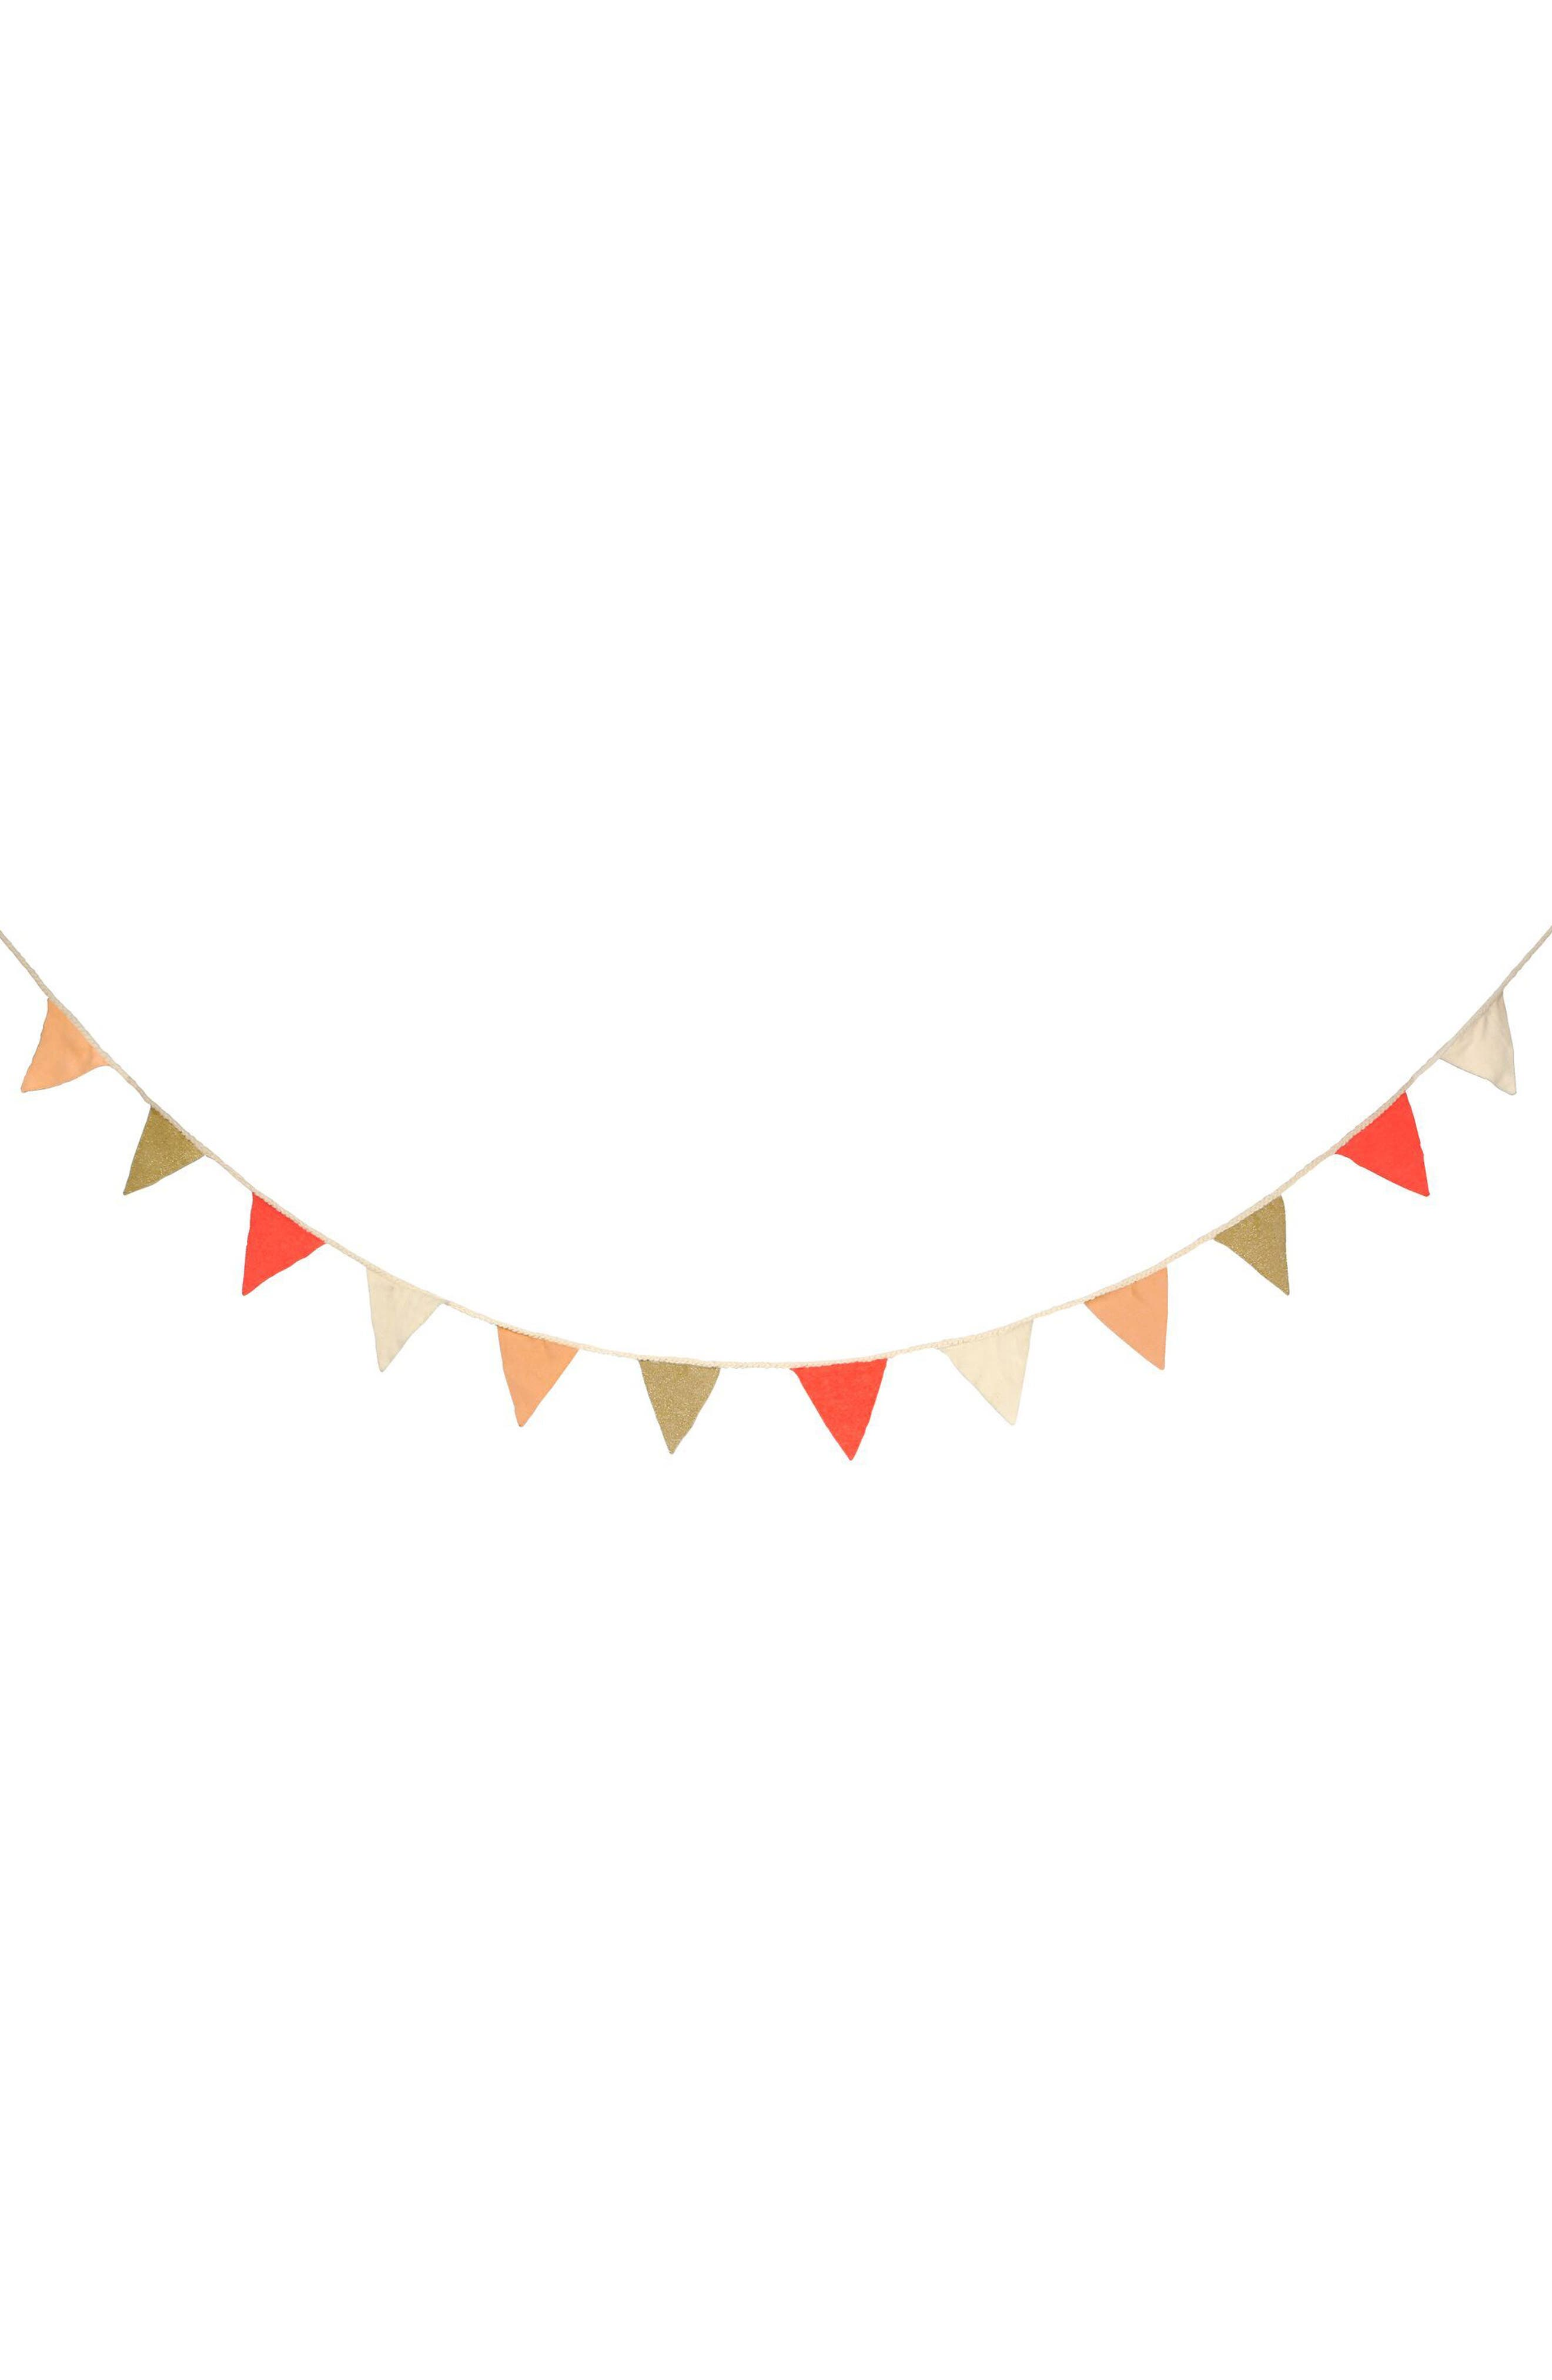 Meri Meri Organic Cotton Flag Garland